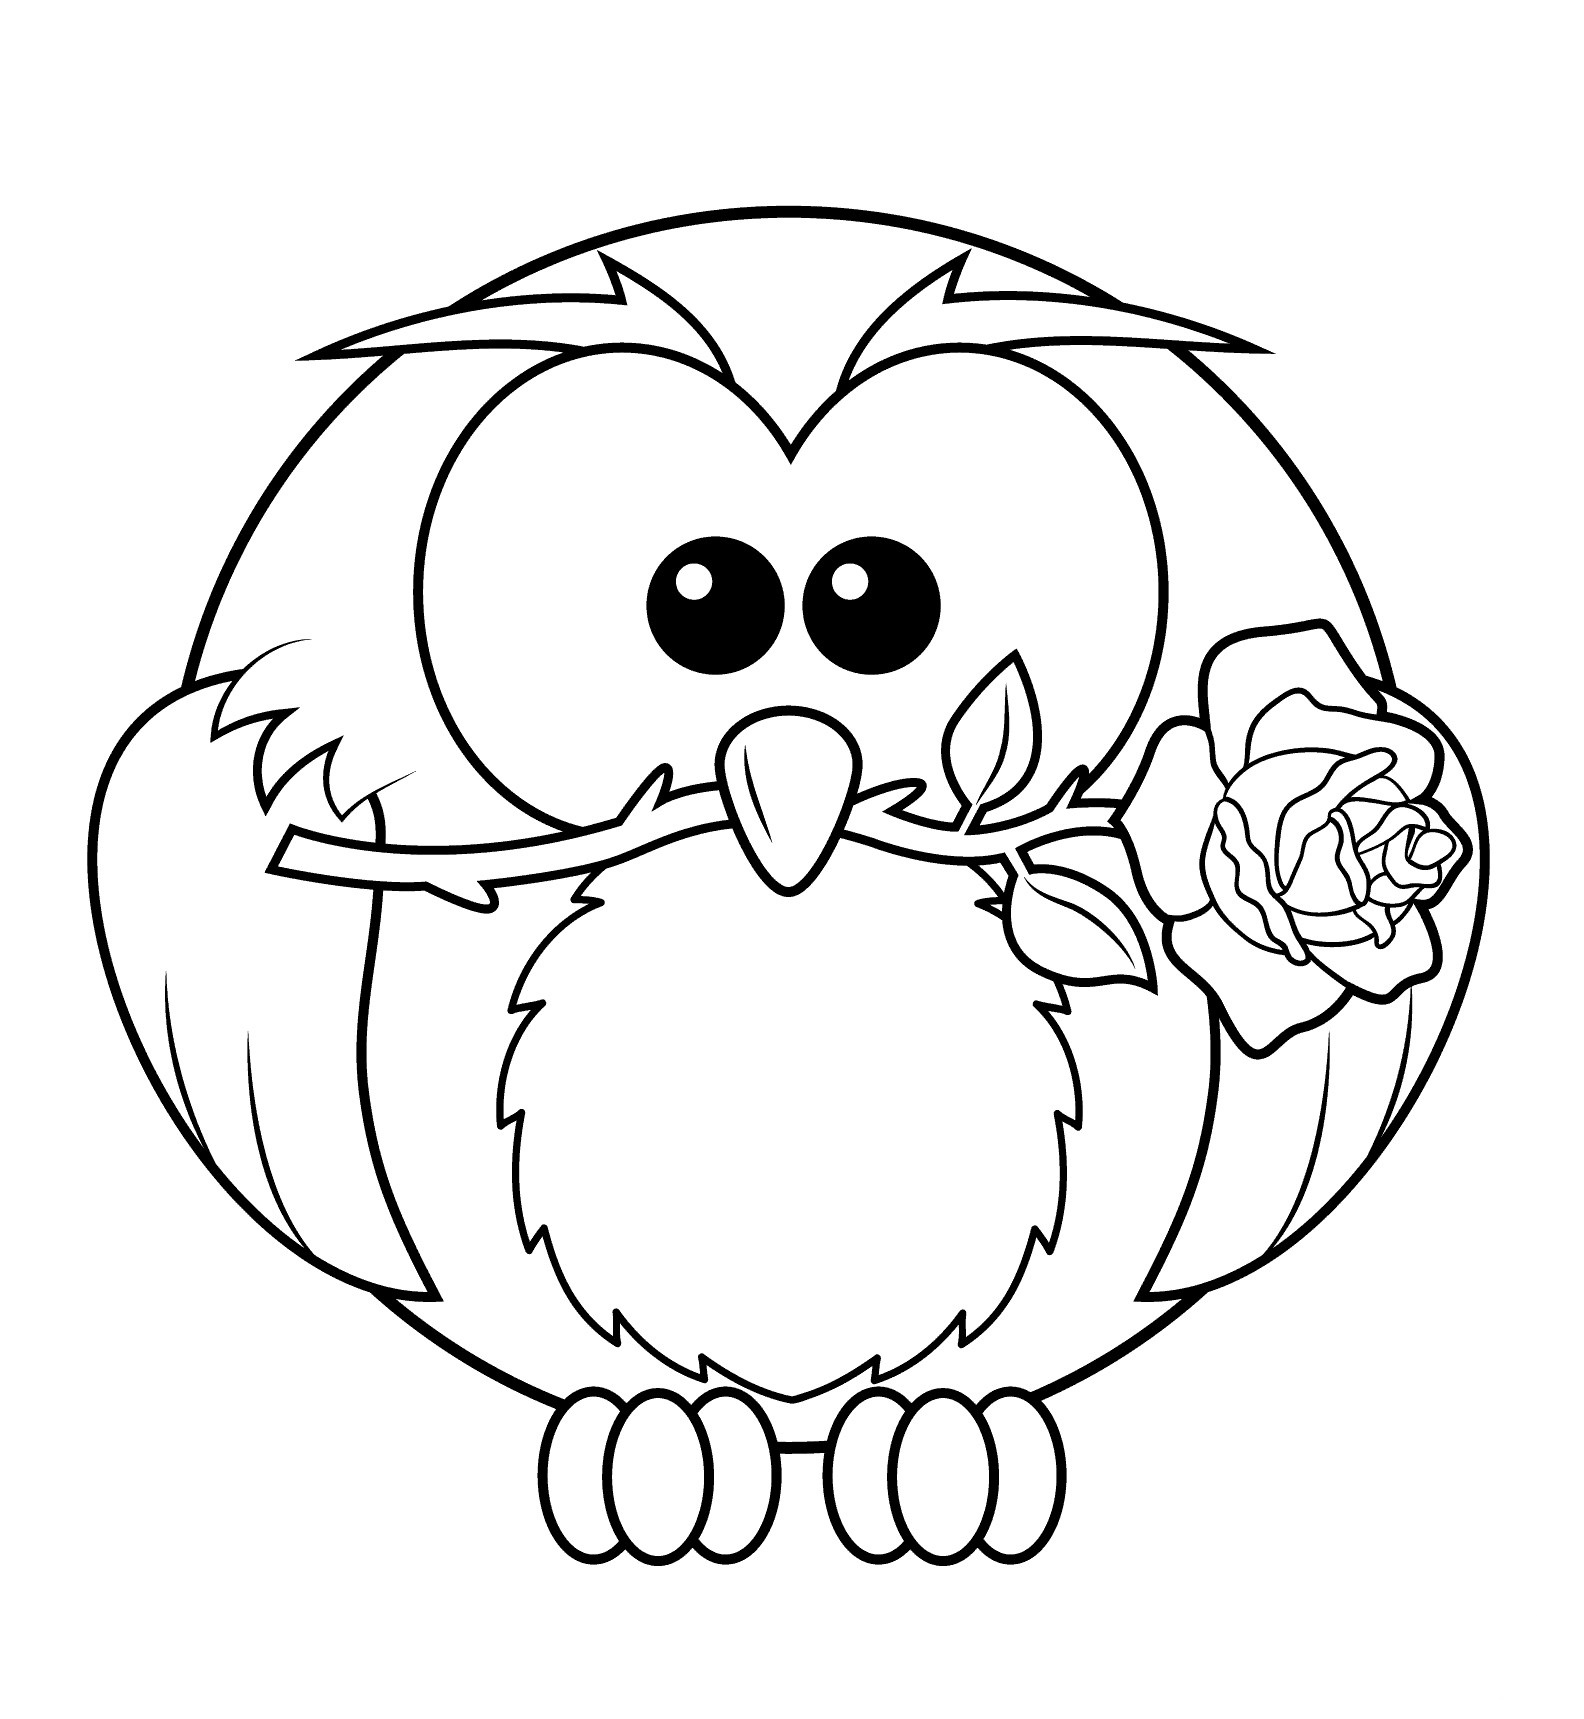 free printable coloring pages of owls christmas owl with gift boxes coloring page free of pages owls free printable coloring